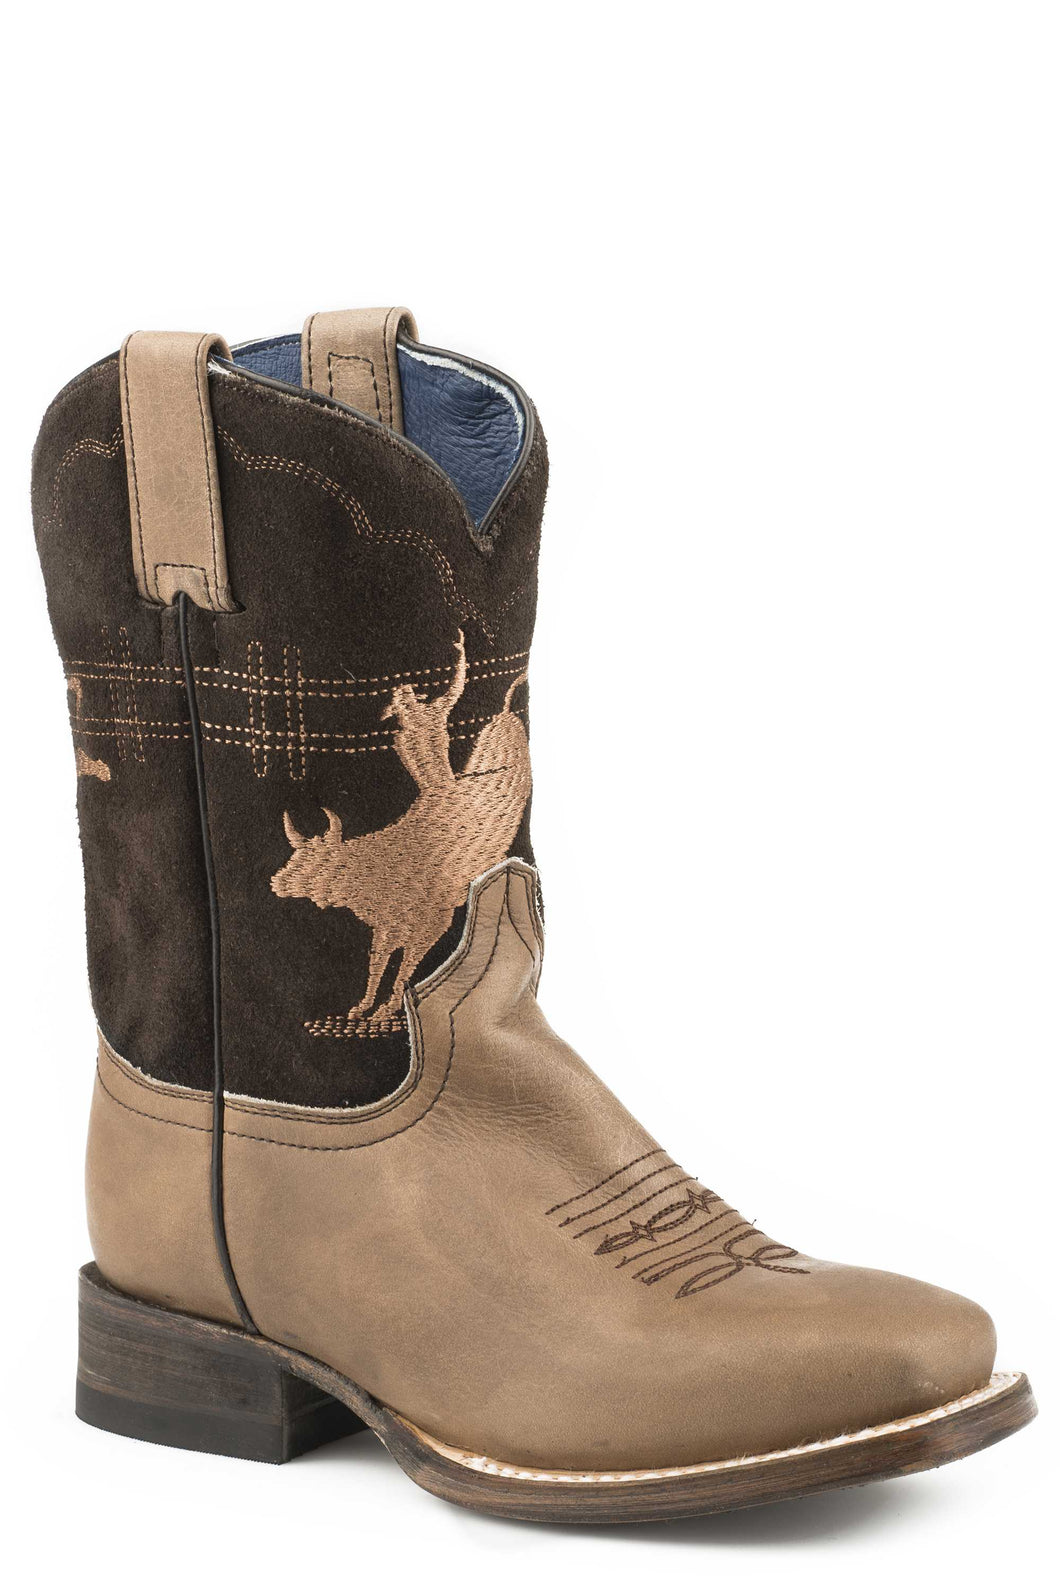 Marley Boot Little Kids Boots Burnish Tan Vamp Brown Suede Shaft